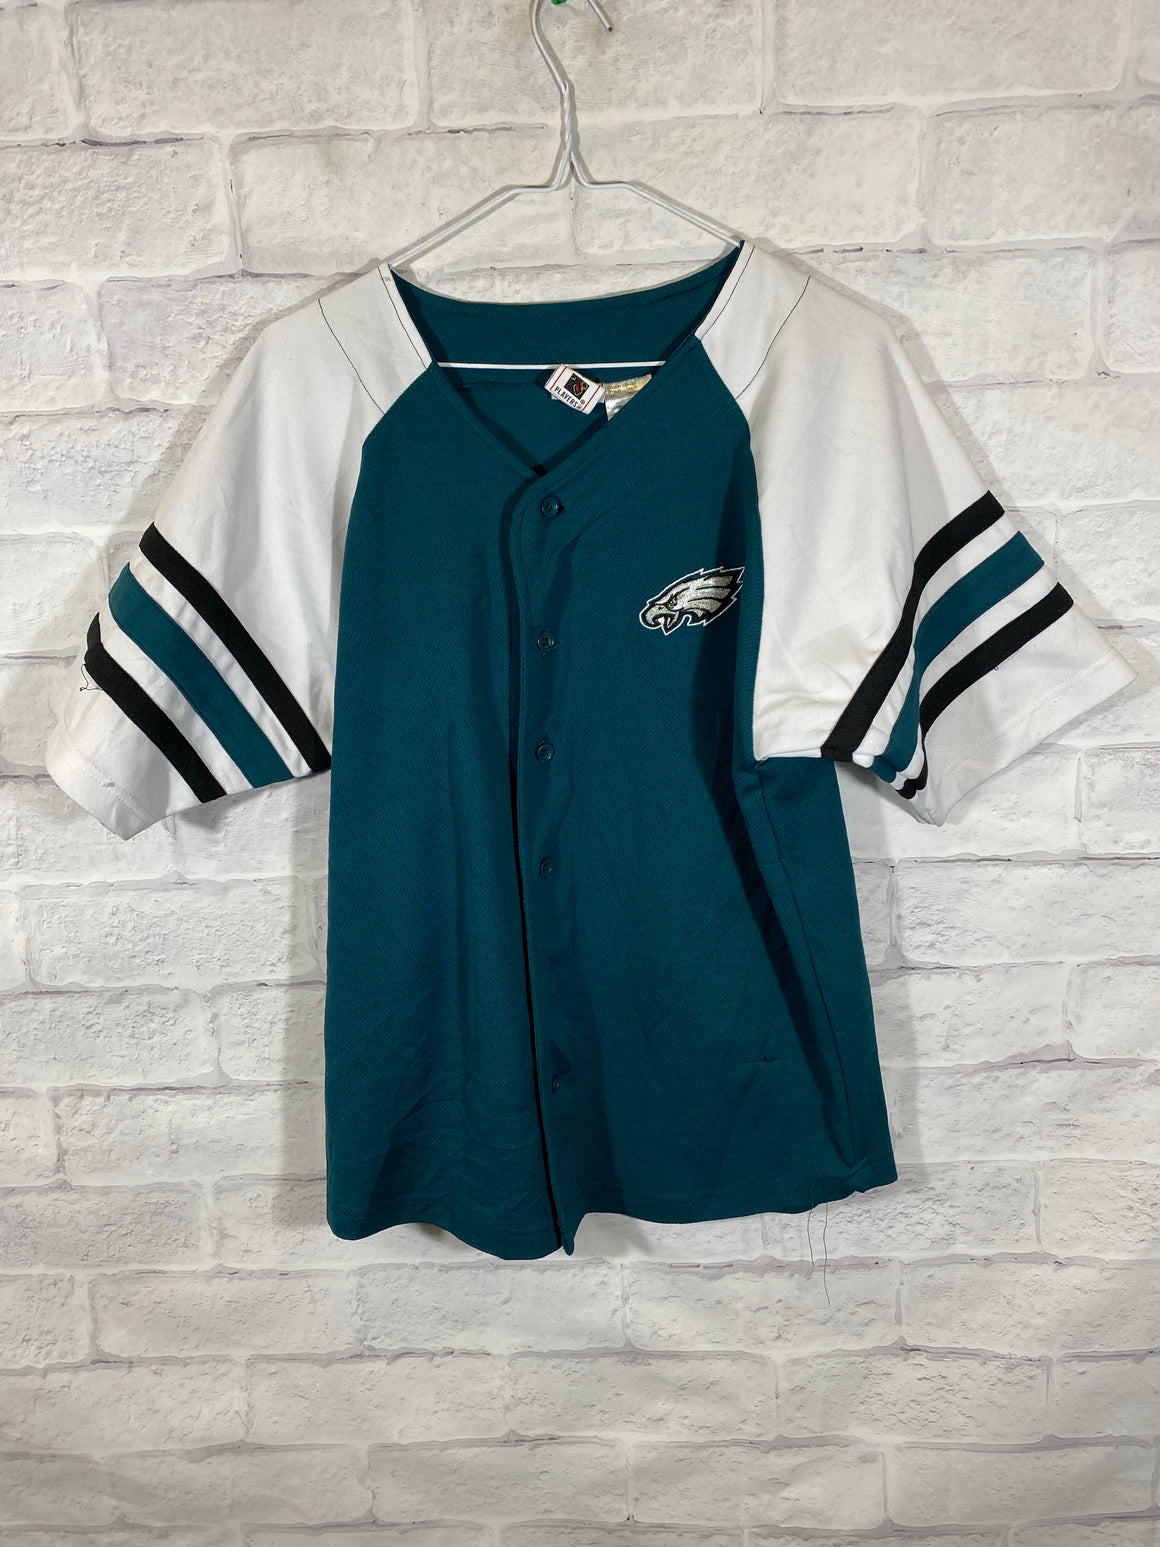 Philly Eagles Mcnabb jersey SZ (kids large)